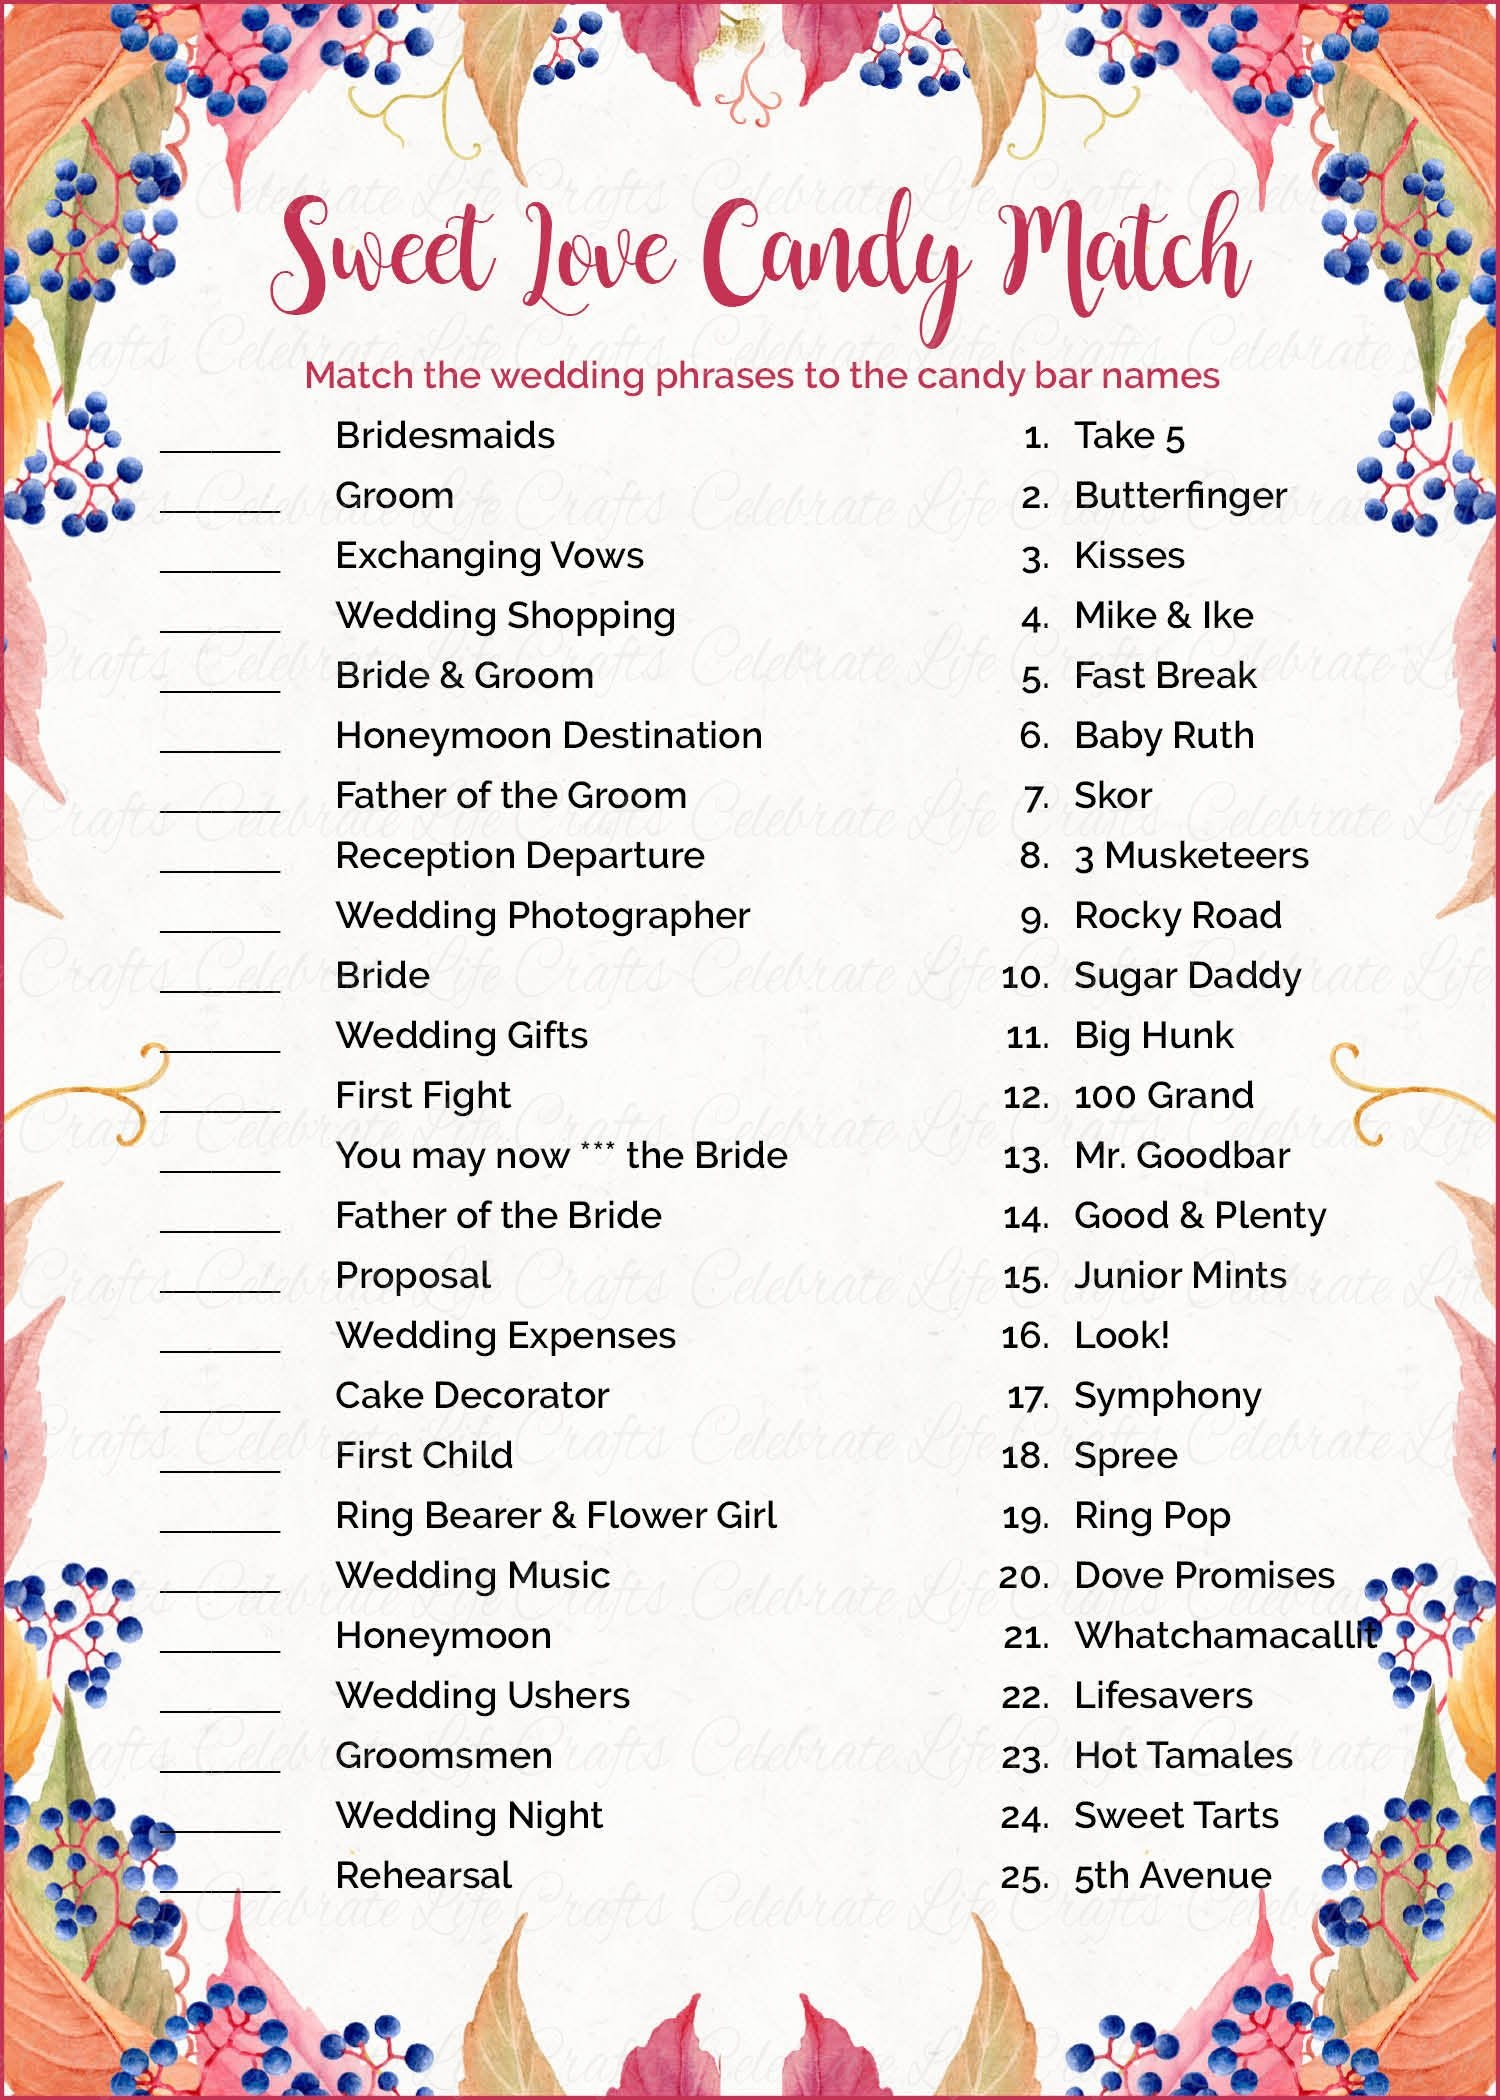 graphic regarding Bridal Shower Printable Games identified as Cute Enjoy Sweet Activity Bridal Shower Activity - PRINTABLE Down load - Slipping inside of Get pleasure from Wedding ceremony Shower Video game - BR1006